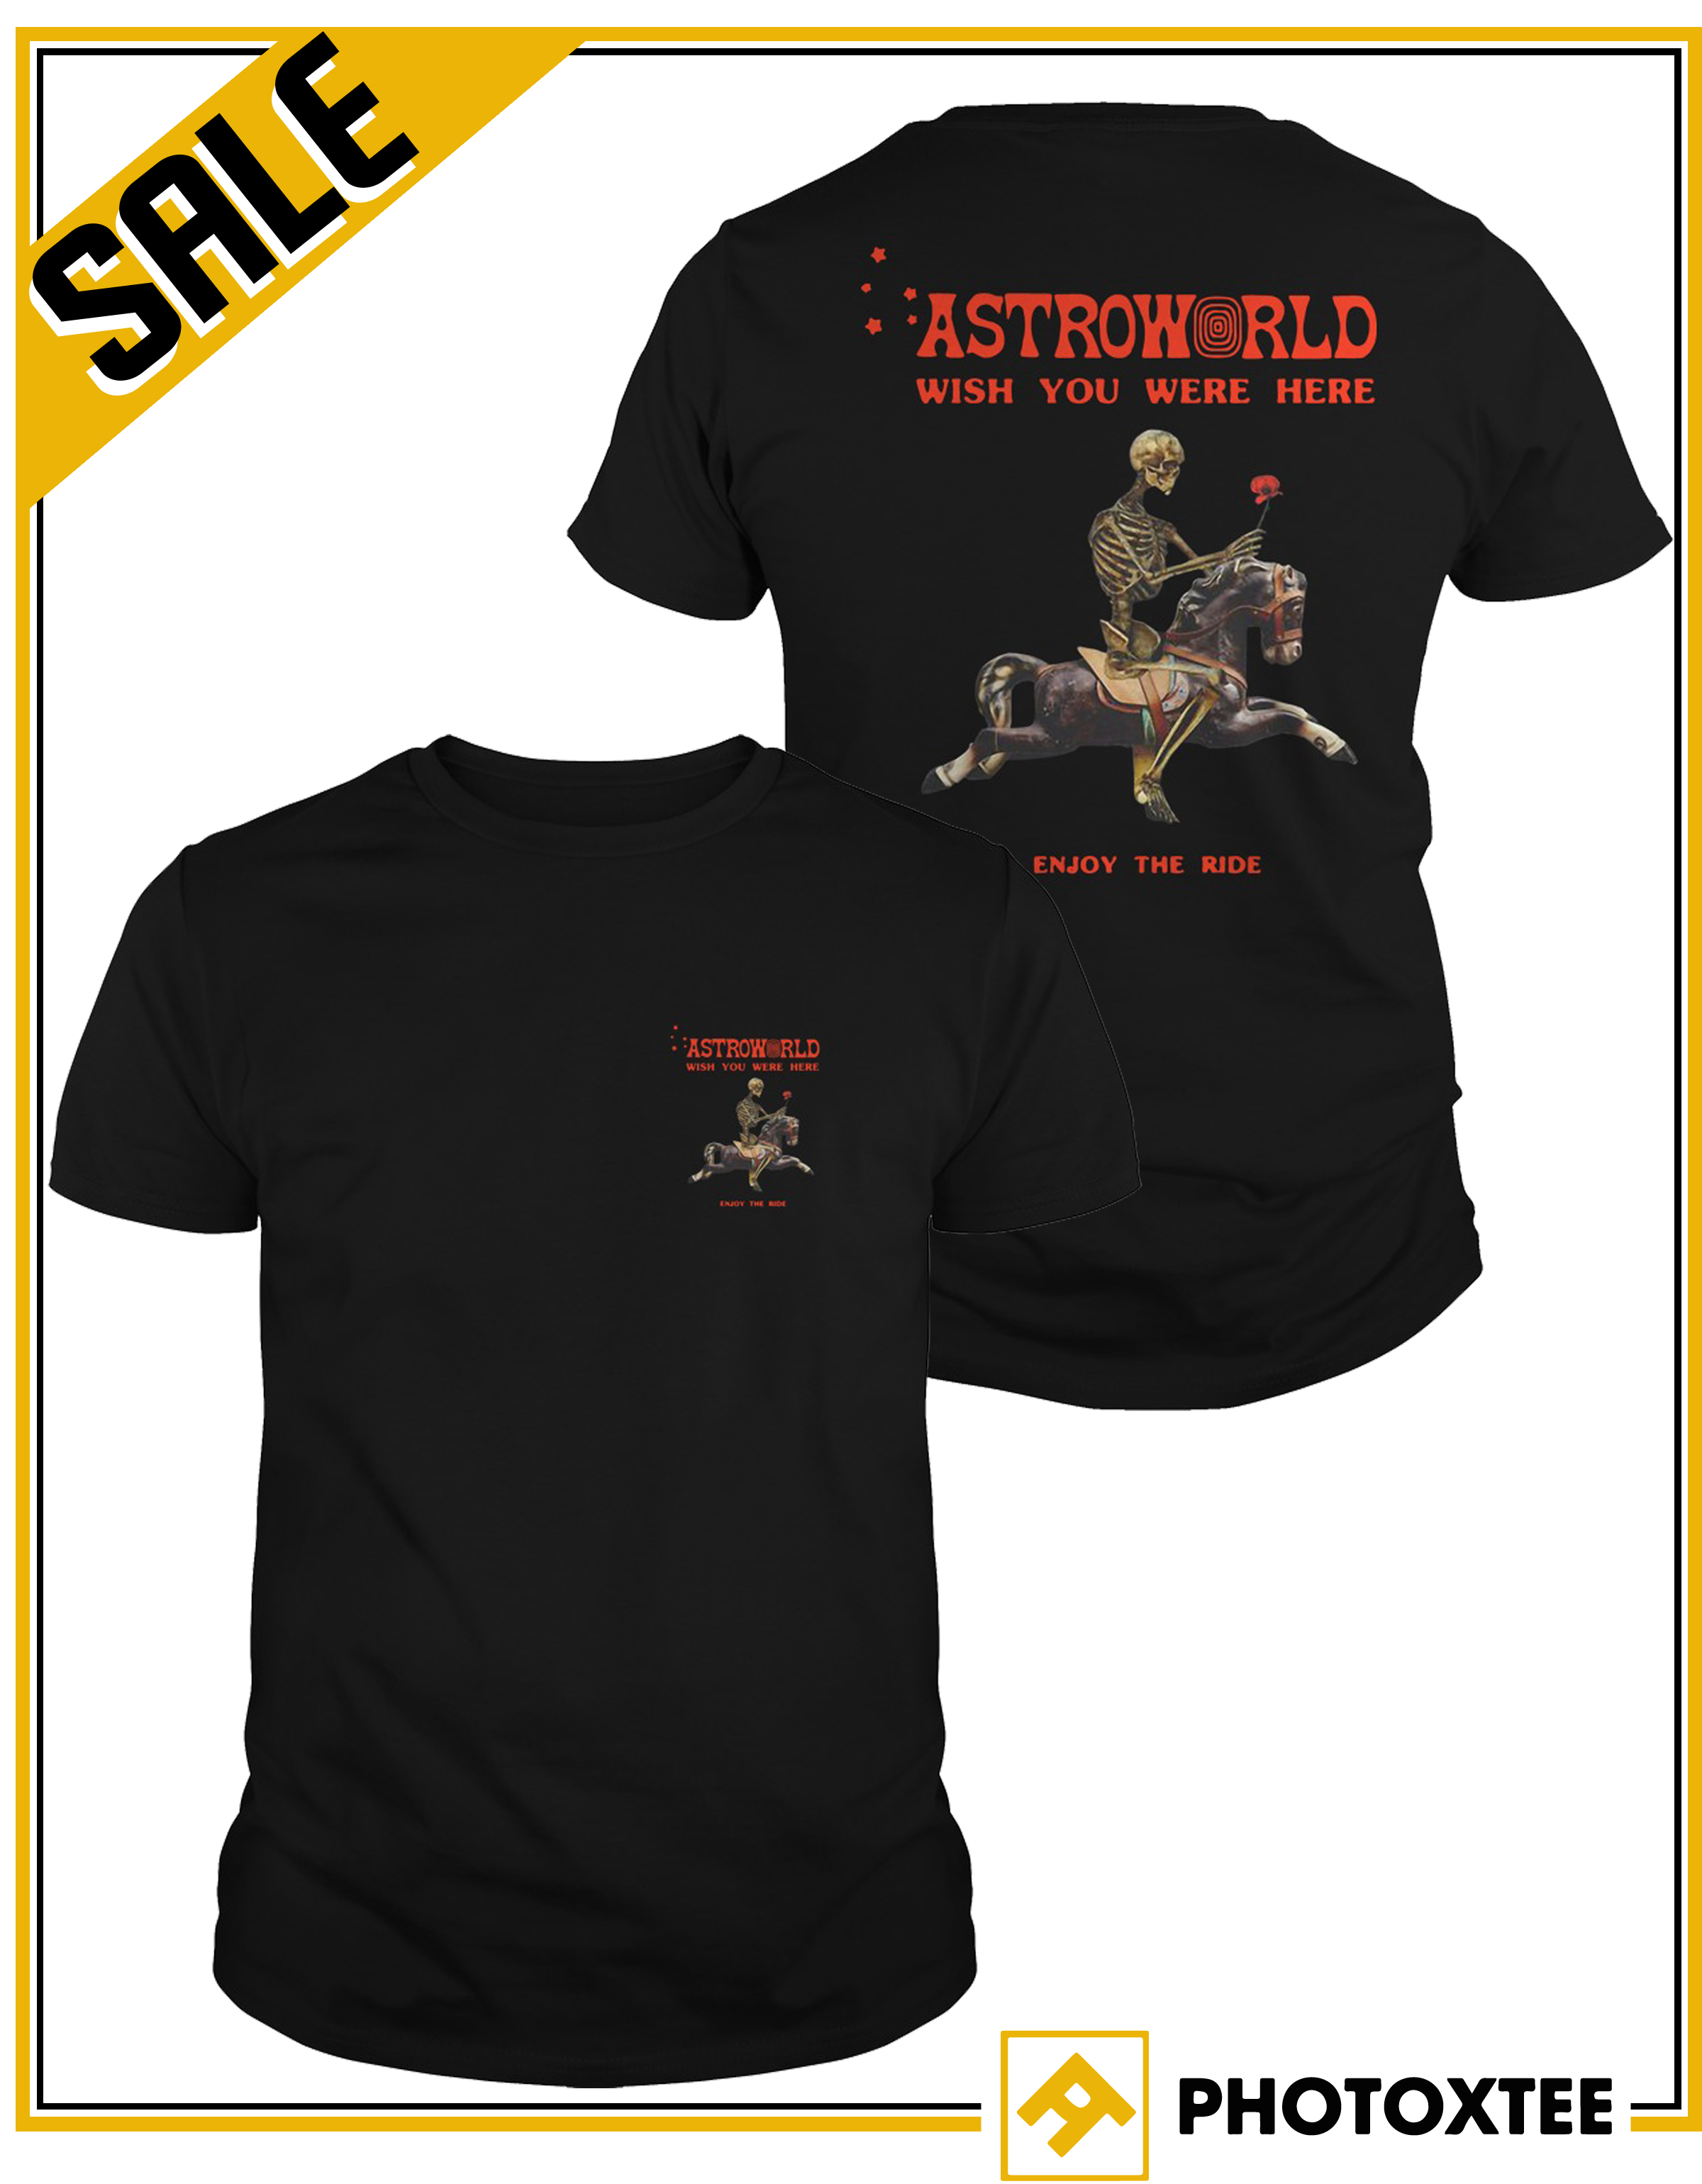 ac581943a577 Astroworld Season Pass Shirt – Astroworld Wish You Were Here Enjoy The Ride  Shirt